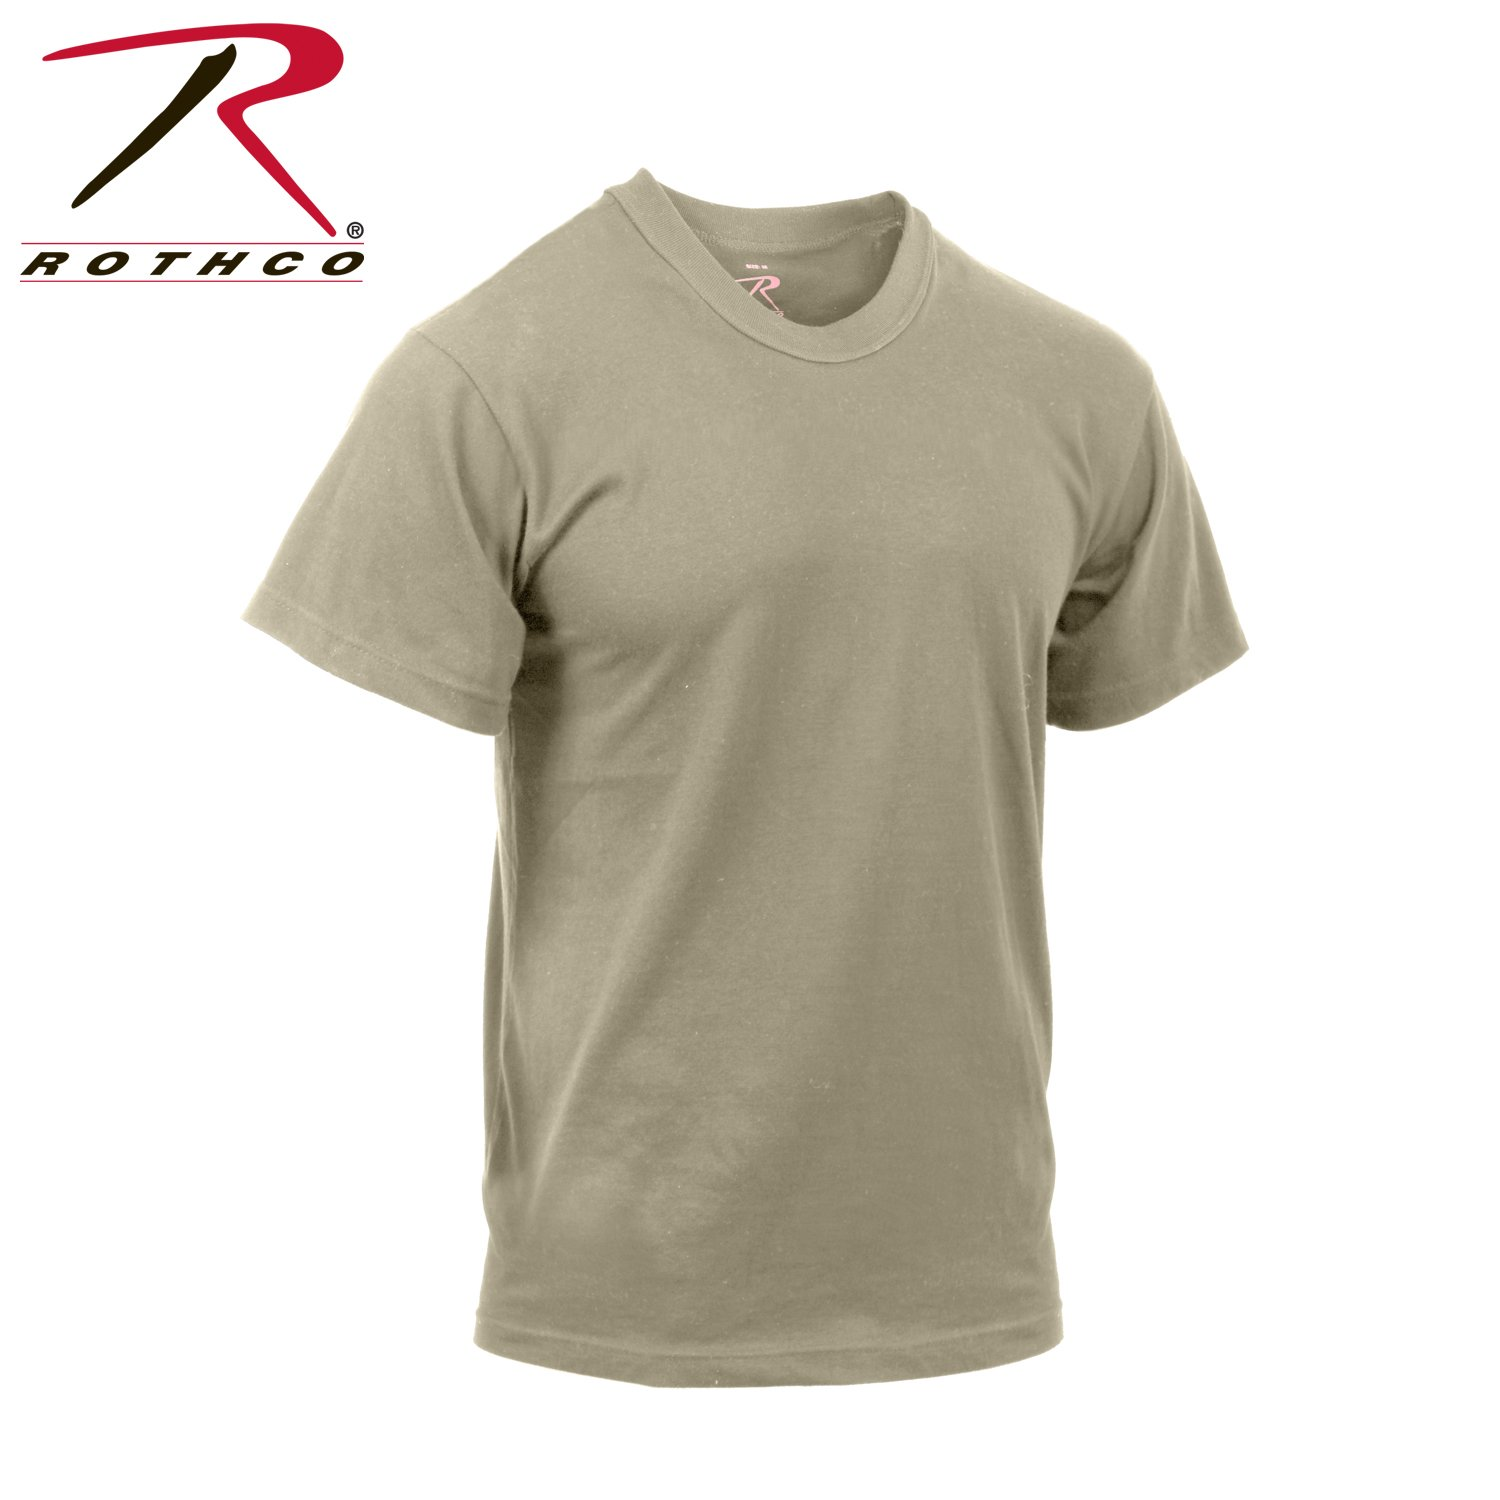 Rothco Moisture Wicking T-Shirt, Sand, Large